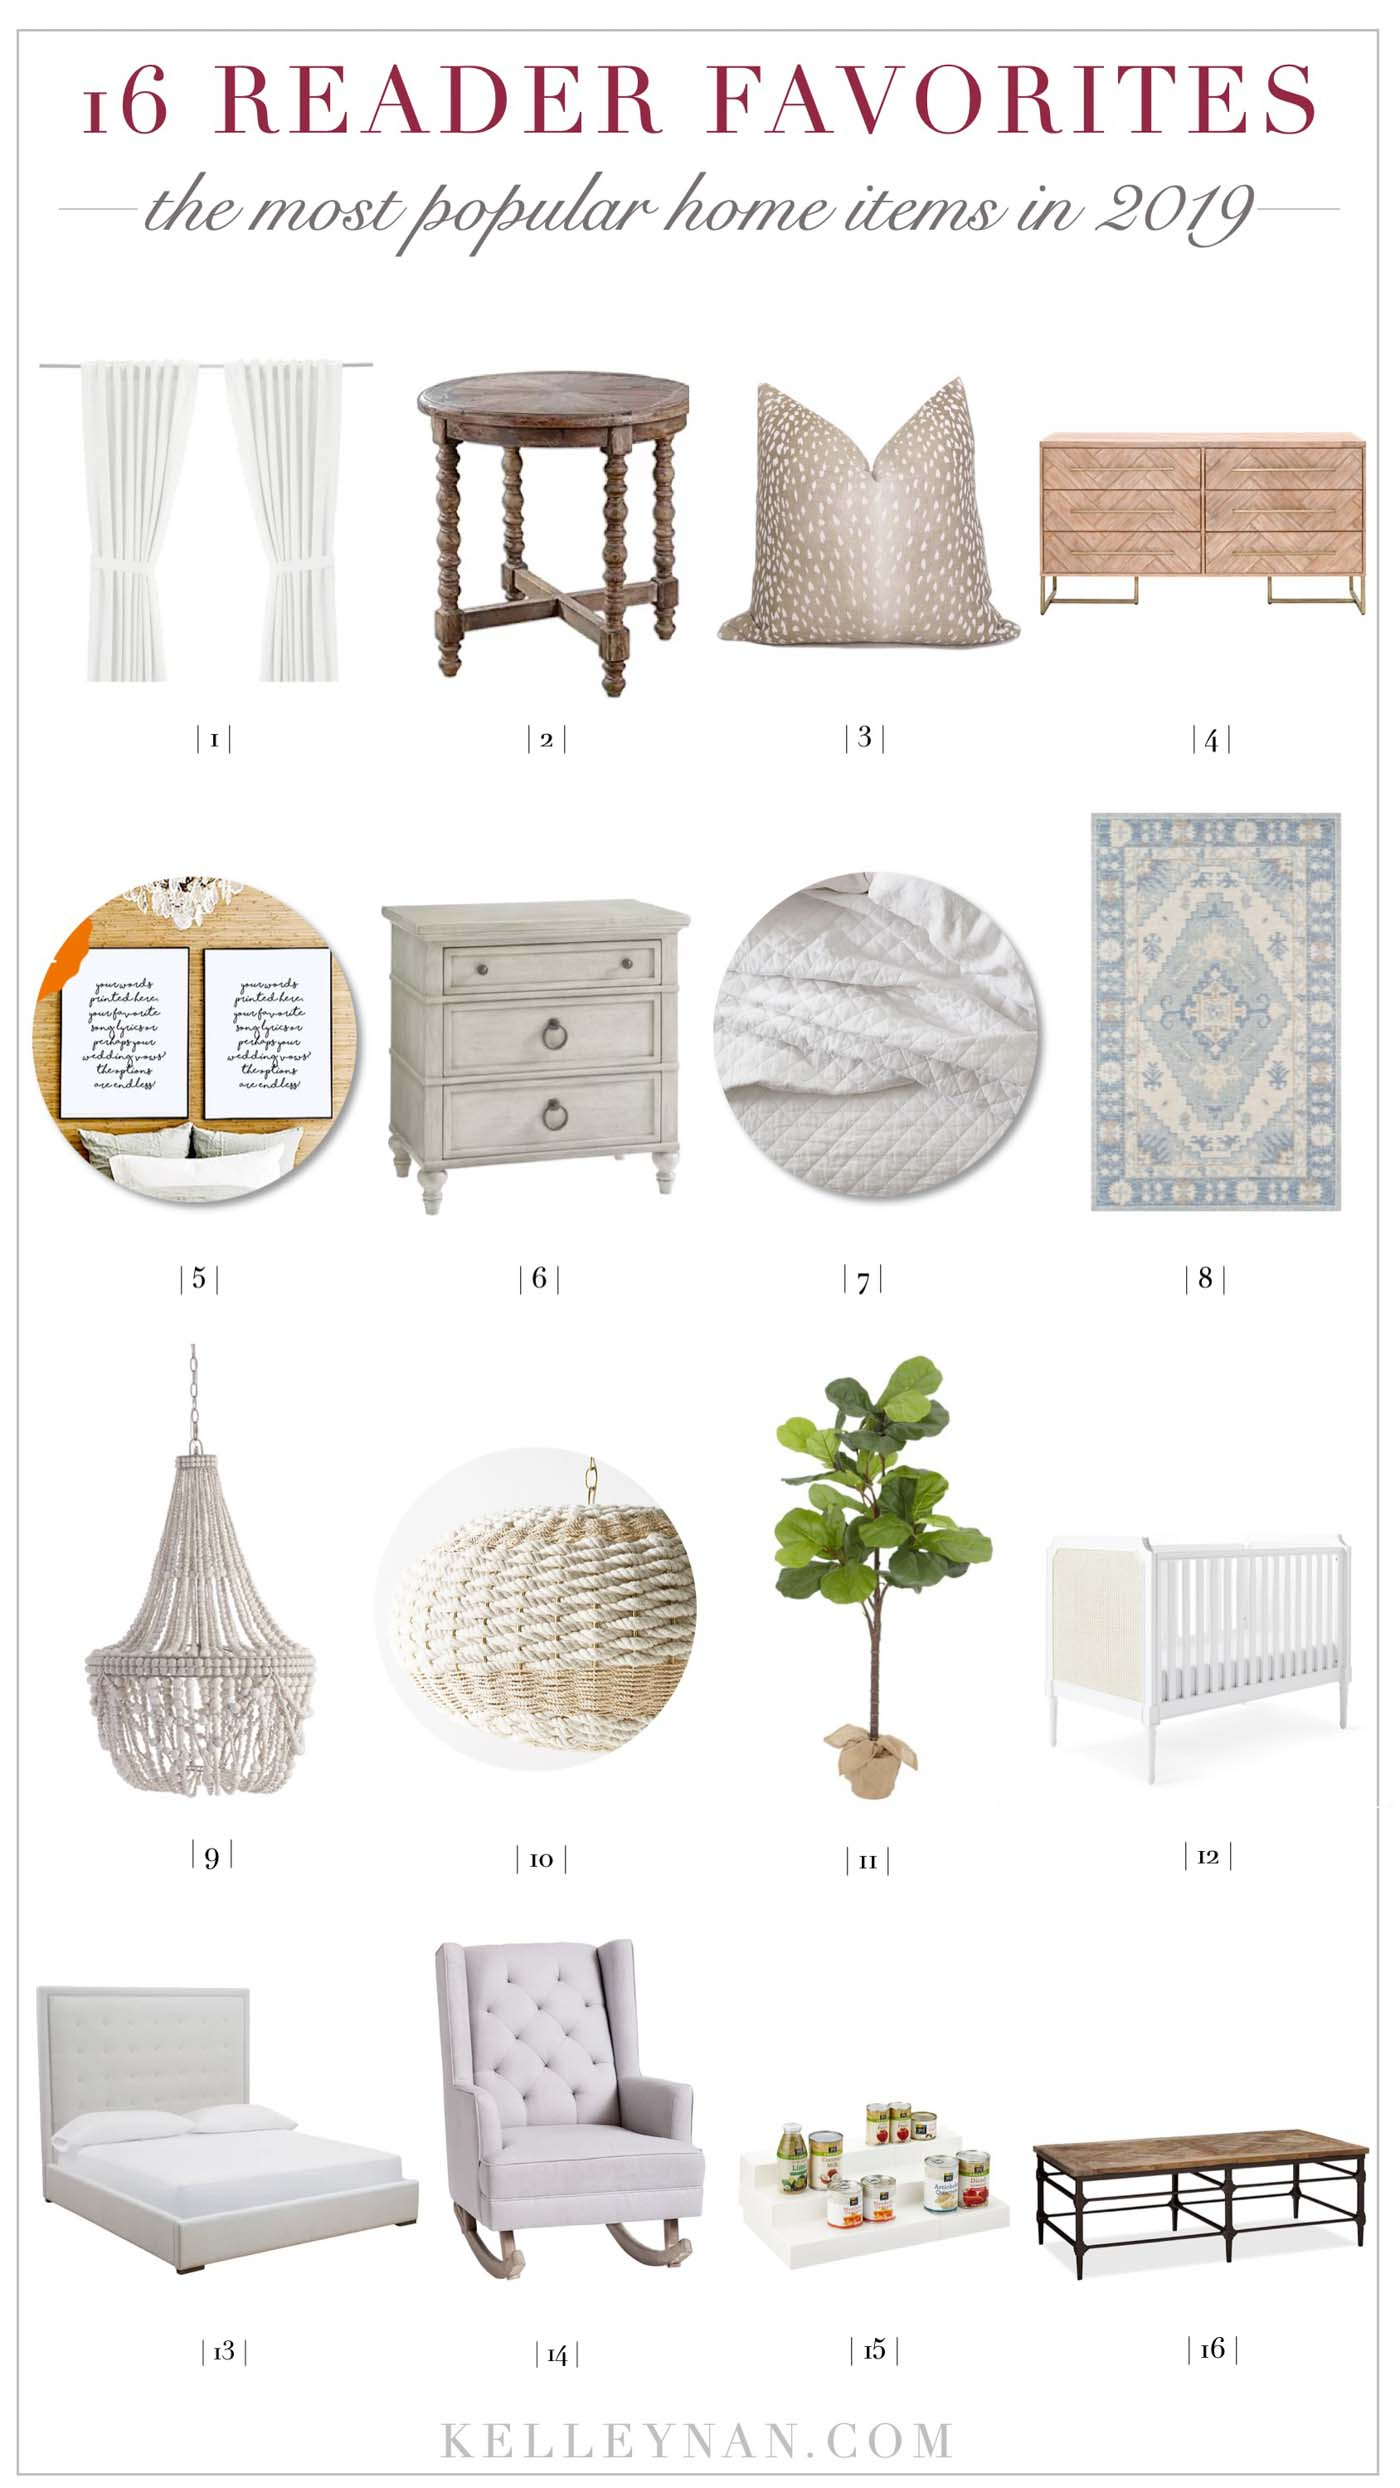 Most popular home decor items for 2019